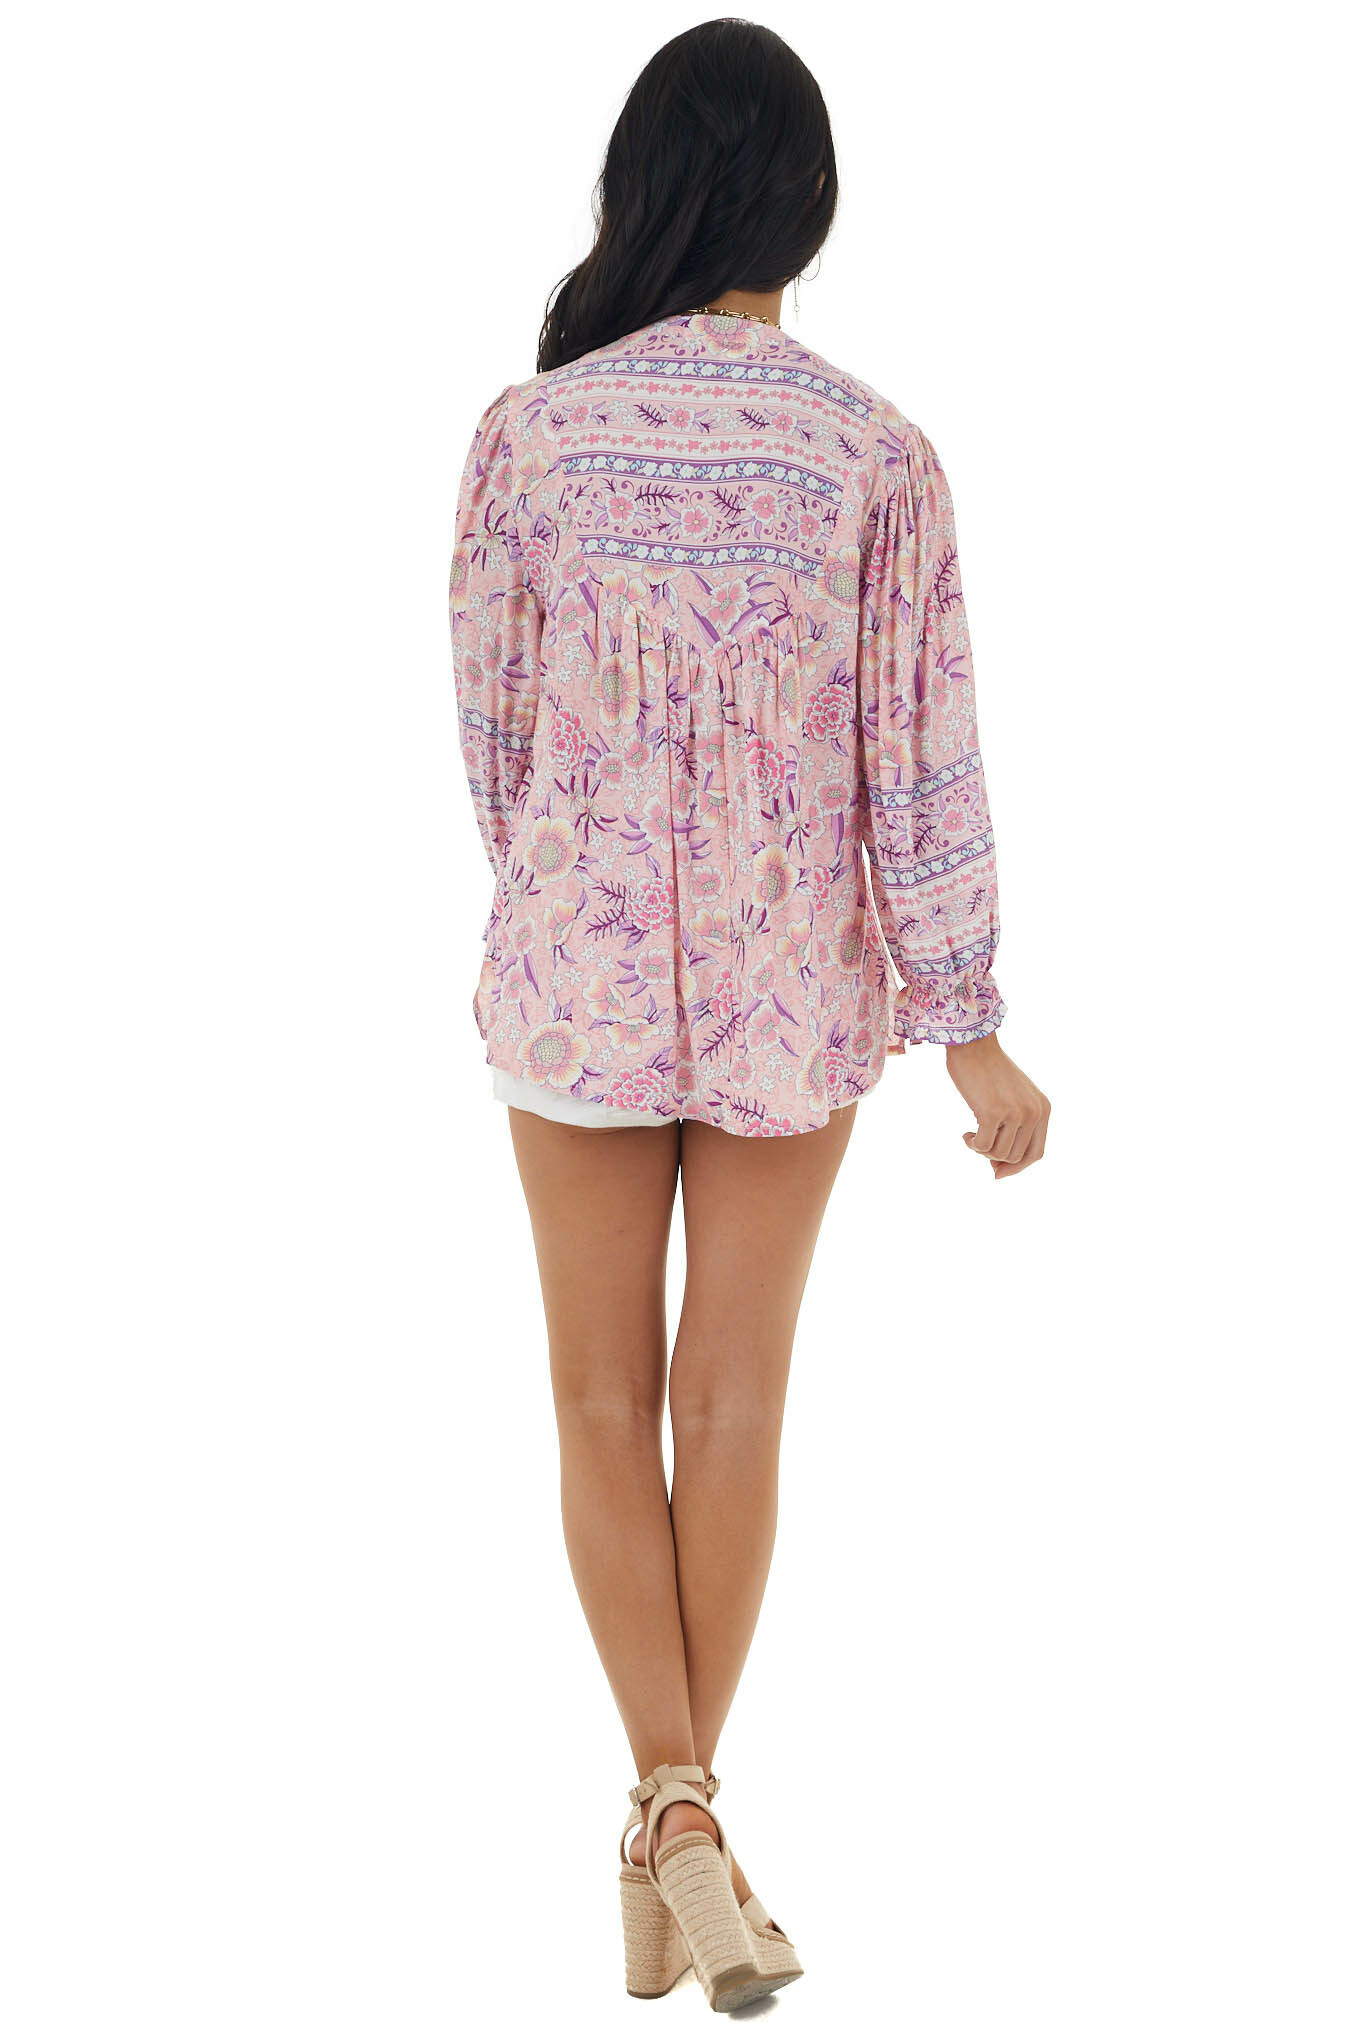 Carnation Abstract Floral Print Long Bubble Sleeve Blouse